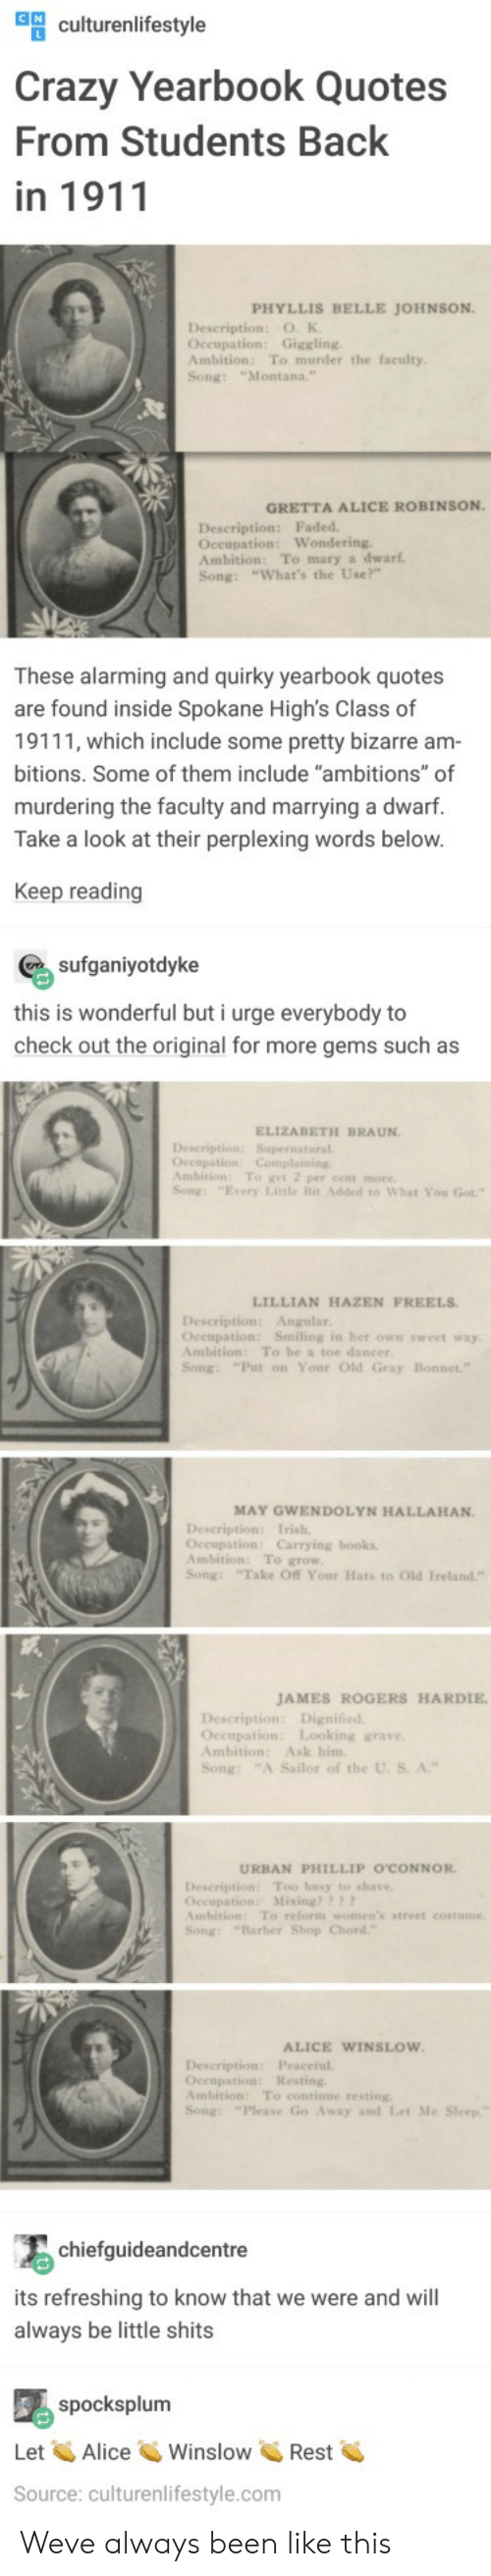 """occupation: ulturenlifestyle  Crazy Yearbook Quotes  From Students Back  in 1911  PHYLLIS BELLE JOHNSON  Description: O. K  Occupation: Giggling  Ambition: To murder the faculty  Song: """"Montana.  GRETTA ALICE ROBINSON  Description: Faded  Oceupation: Wondering  Ambition: To mary a dwarf  Song: """"What's the Use?""""  These alarming and quirky yearbook quotes  are found inside Spokane High's Class of  19111, which include some pretty bizarre am  bitions. Some of them include """"ambitions"""" of  murdering the faculty and marrying a dwarf.  Take a look at their perplexing words below  Keep reading  sufganiyotdyke  this is wonderful but i urge everybody to  check out the original for more gems such as  ELIZABETH BRAUN  Description: Supernatural  Ambition: To get 2 per cent more  Song: """"Every Litle Bit Added to What You Got  LILLIAN HAZEN FREELS  Description: Angular  Oceupation: Smiling in her own sweet way  Ambition: To be a toe dancer  Song: """"Put on Your Old Gray  MAY GWENDOLYN HALLAHAN.  Occupation: Carrying books  Ambition: To grow  Song: Take Off Your Hats to Old Ireland""""  JAMES ROGERS HARDIE  Occupation: Looking grave  Ambition: Ask him  Song: """"A Sailor of the U. S. A.""""  URBAN PHILLIP O'CONNOR  Description Too busy to shave  Occupation: Mixing??  mbition: To reform women's street costume  Song: """"Barber Shop Chord  ALICE WINSLOW  Description: Peaceful  Occupation: Resting  Ambition: To continue resting  Song: """"Please Go Away and Let Me  chiefguideandcentre  its refreshing to know that we were and will  always be little shits  spocksplum  Let AliceWinslowRest  Source: culturenlifestyle.com Weve always been like this"""